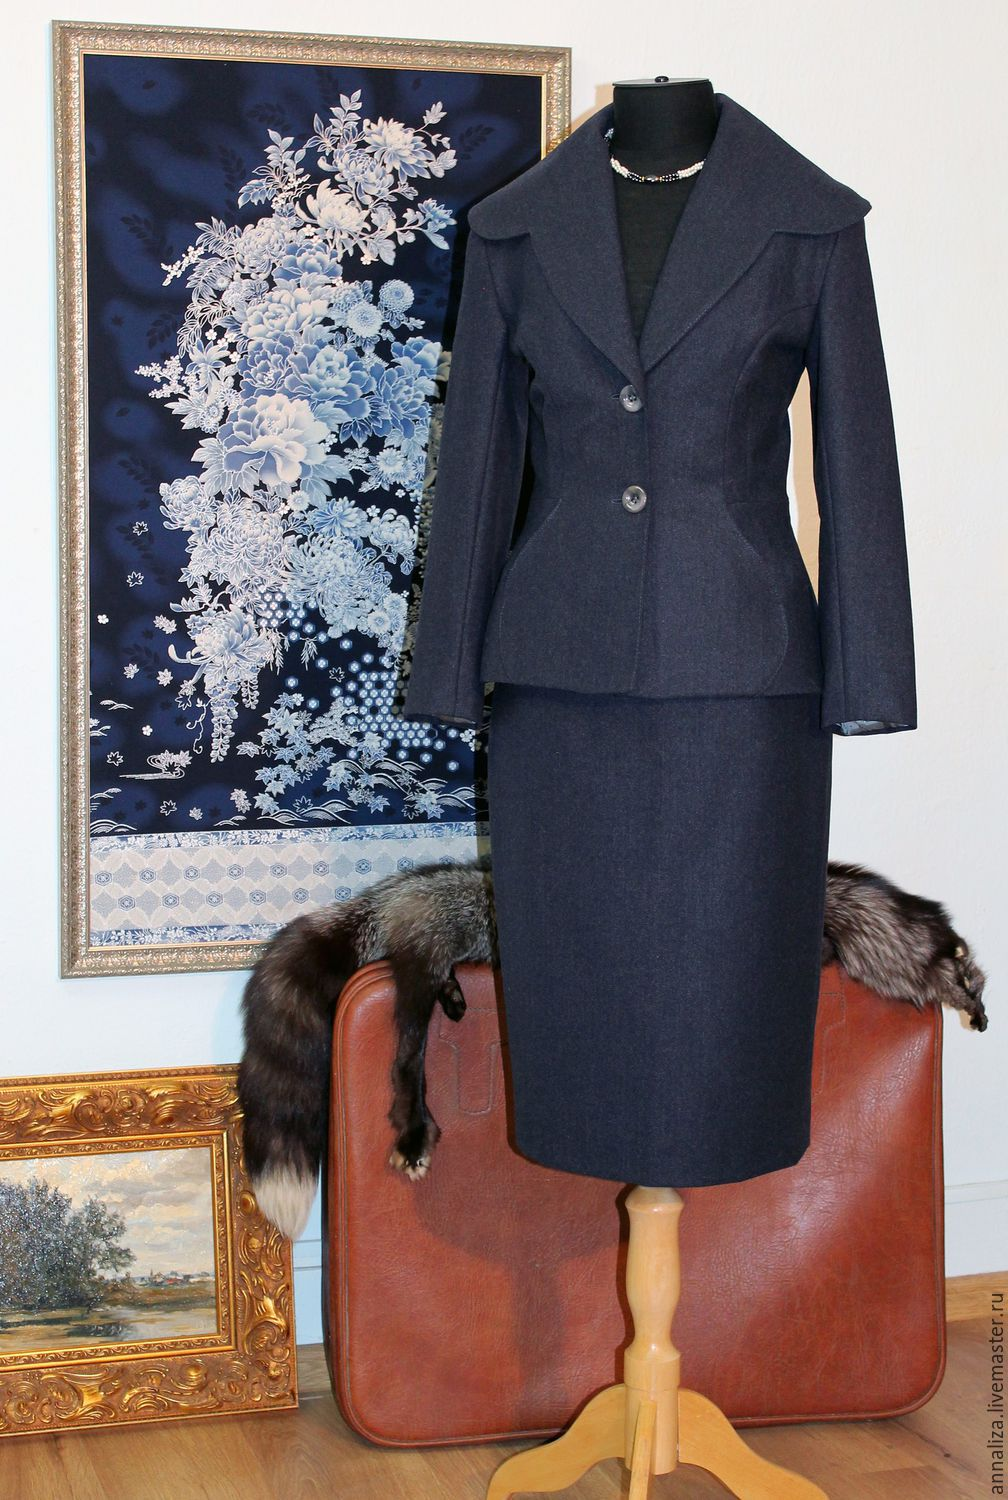 Women's business suit in a retro style 'Lady BOSS 2', Suits, Moscow,  Фото №1